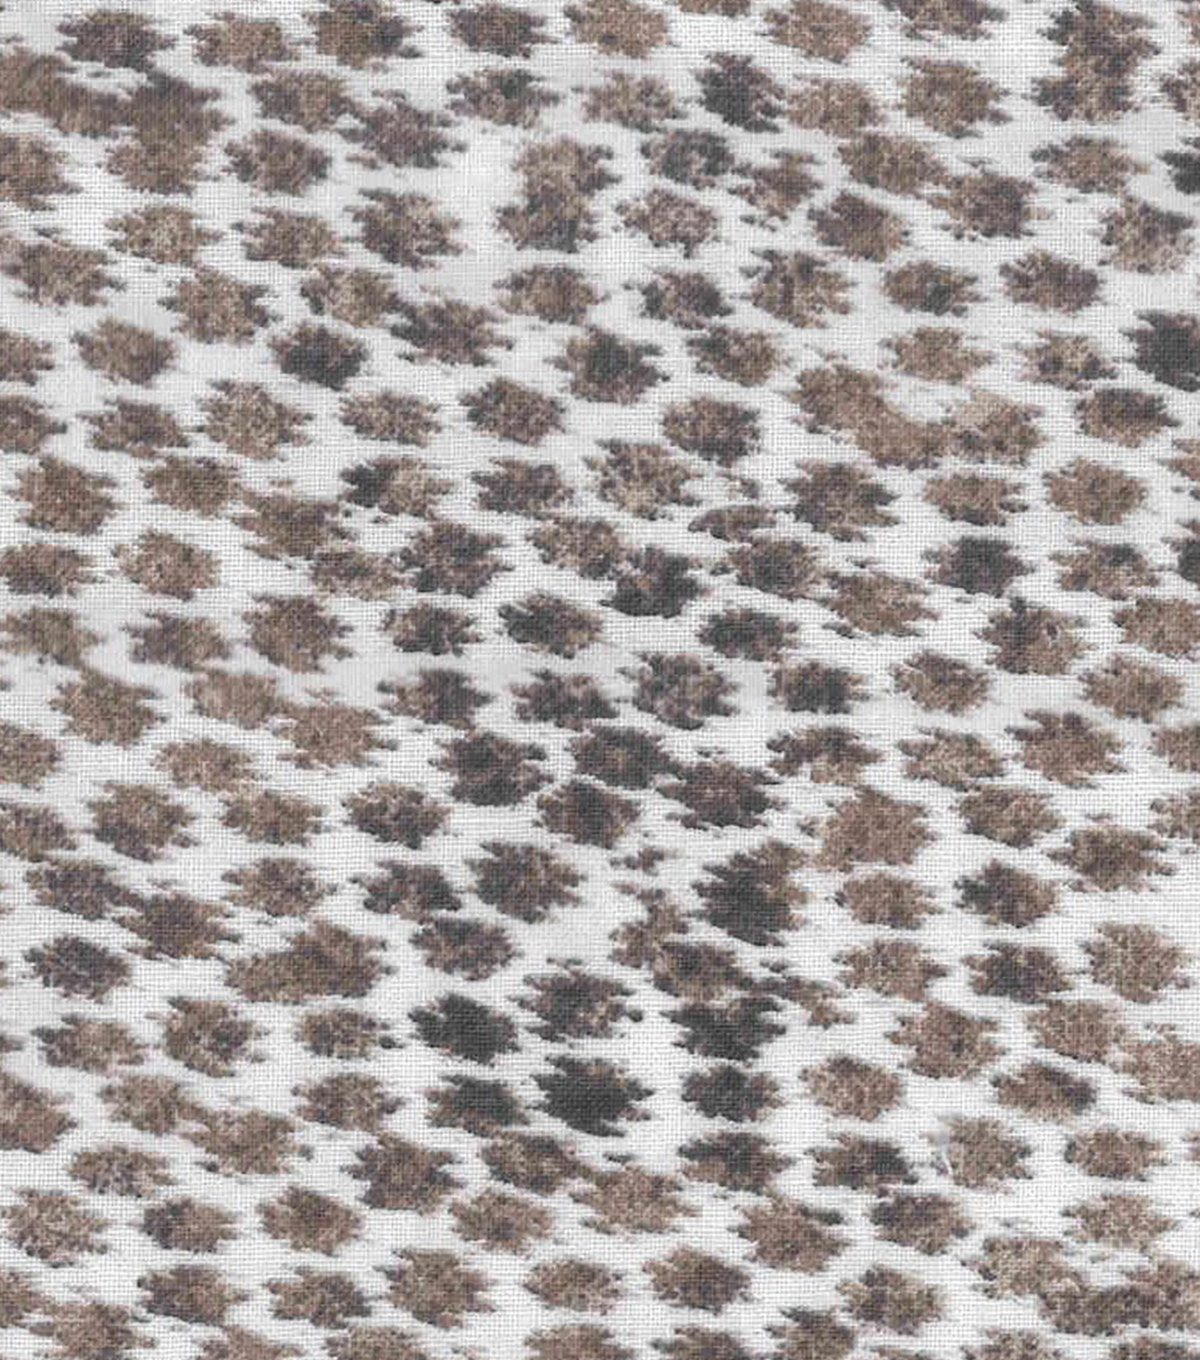 Keepsake Calico Cotton Fabric 43\u0027\u0027-Tan Smeared Dots